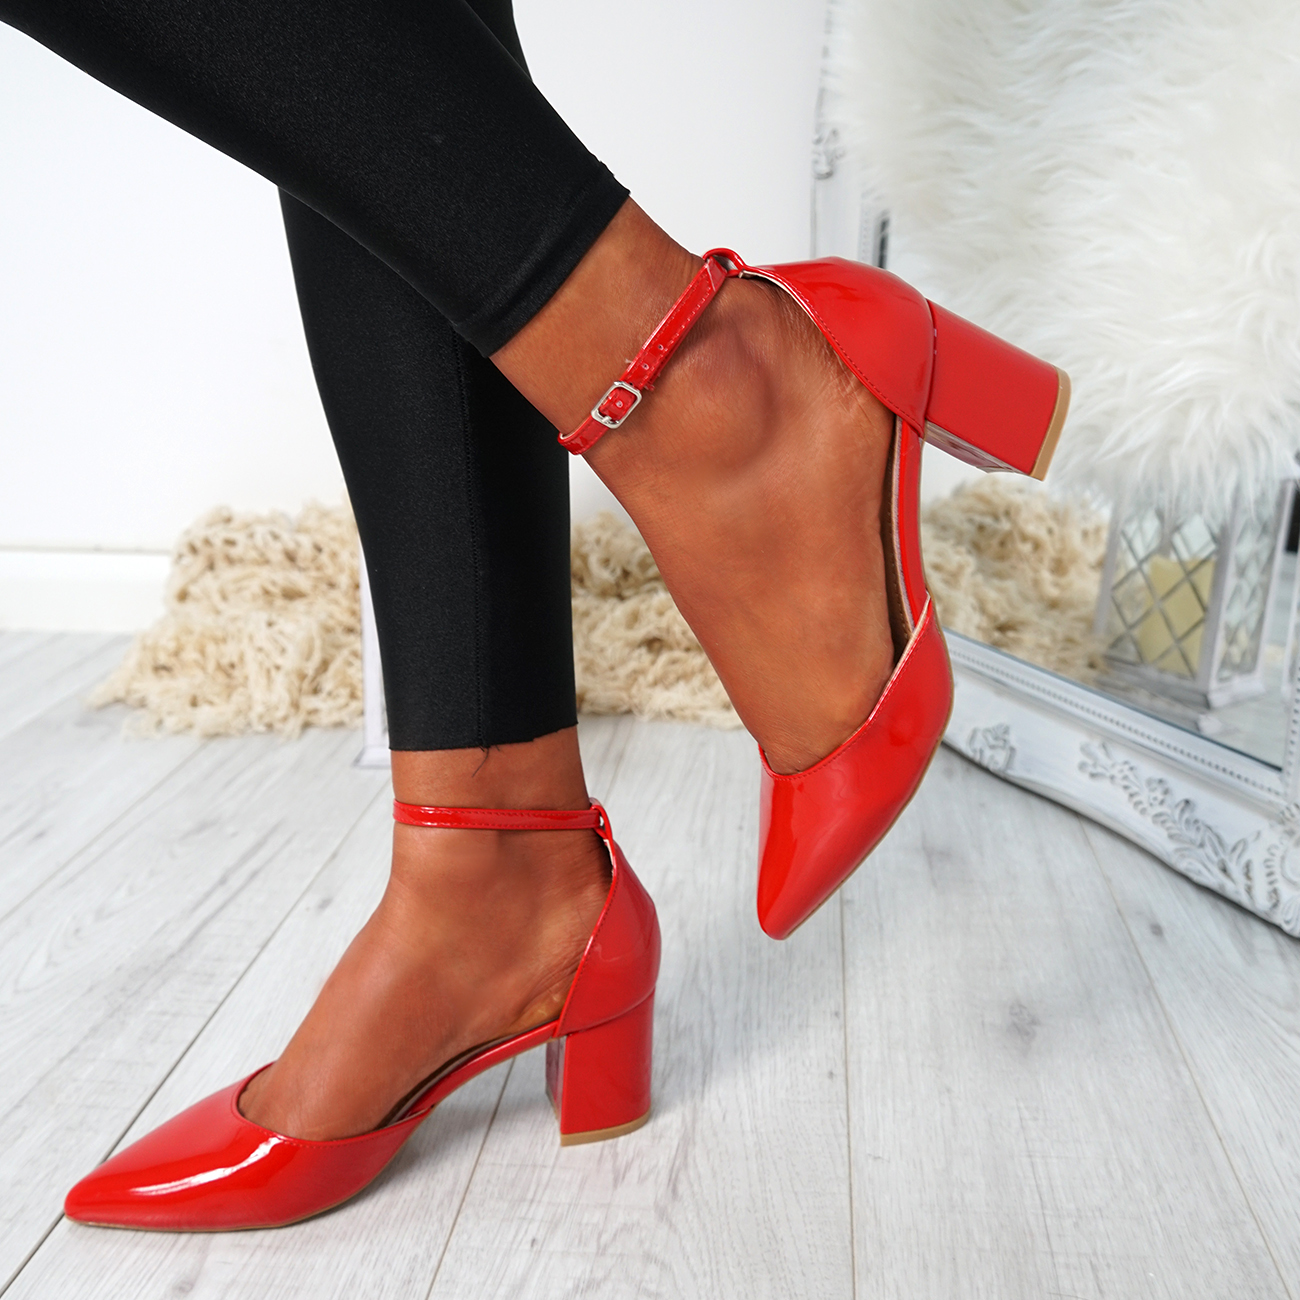 WOMENS-LADIES-ANKLE-STRAP-BLOCK-HEEL-PUMPS-POINTED-TOE-WORK-PARTY-SHOES-SIZE thumbnail 19